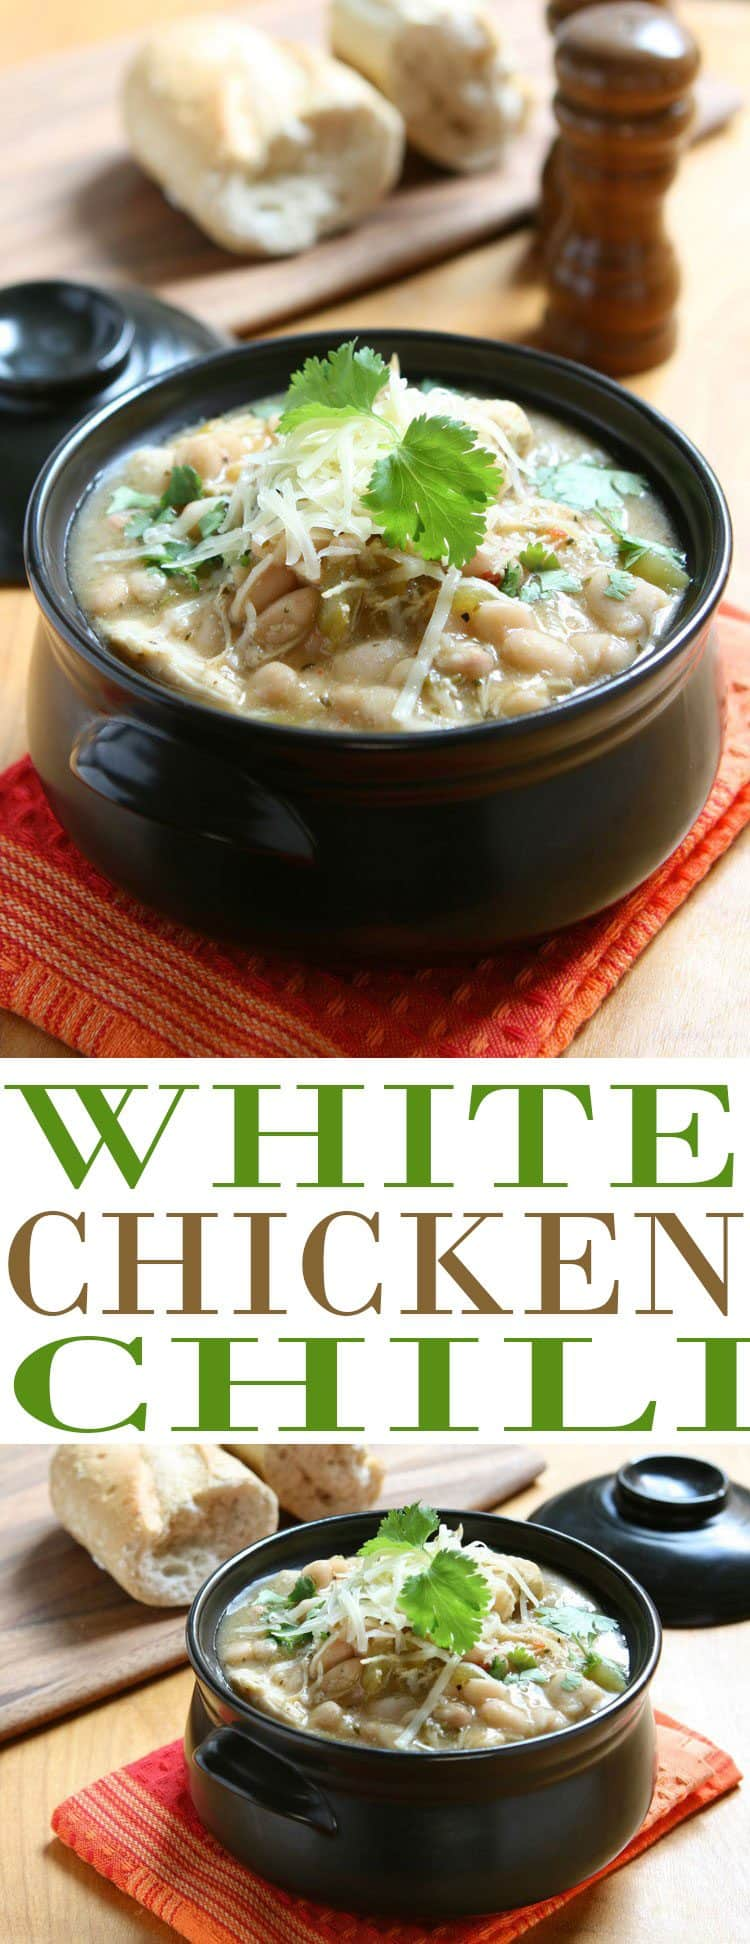 White Chicken Chili recipe is one of the best fall soup recipes (and chili recipes) we have. This flavorful white bean and chicken chili is so hearty. It is also the perfect way to use up Thanksgiving turkey leftovers. Substitute turkey for chicken and make this a budget friendly after Thanksgiving recipe. Great way to use up leftovers!